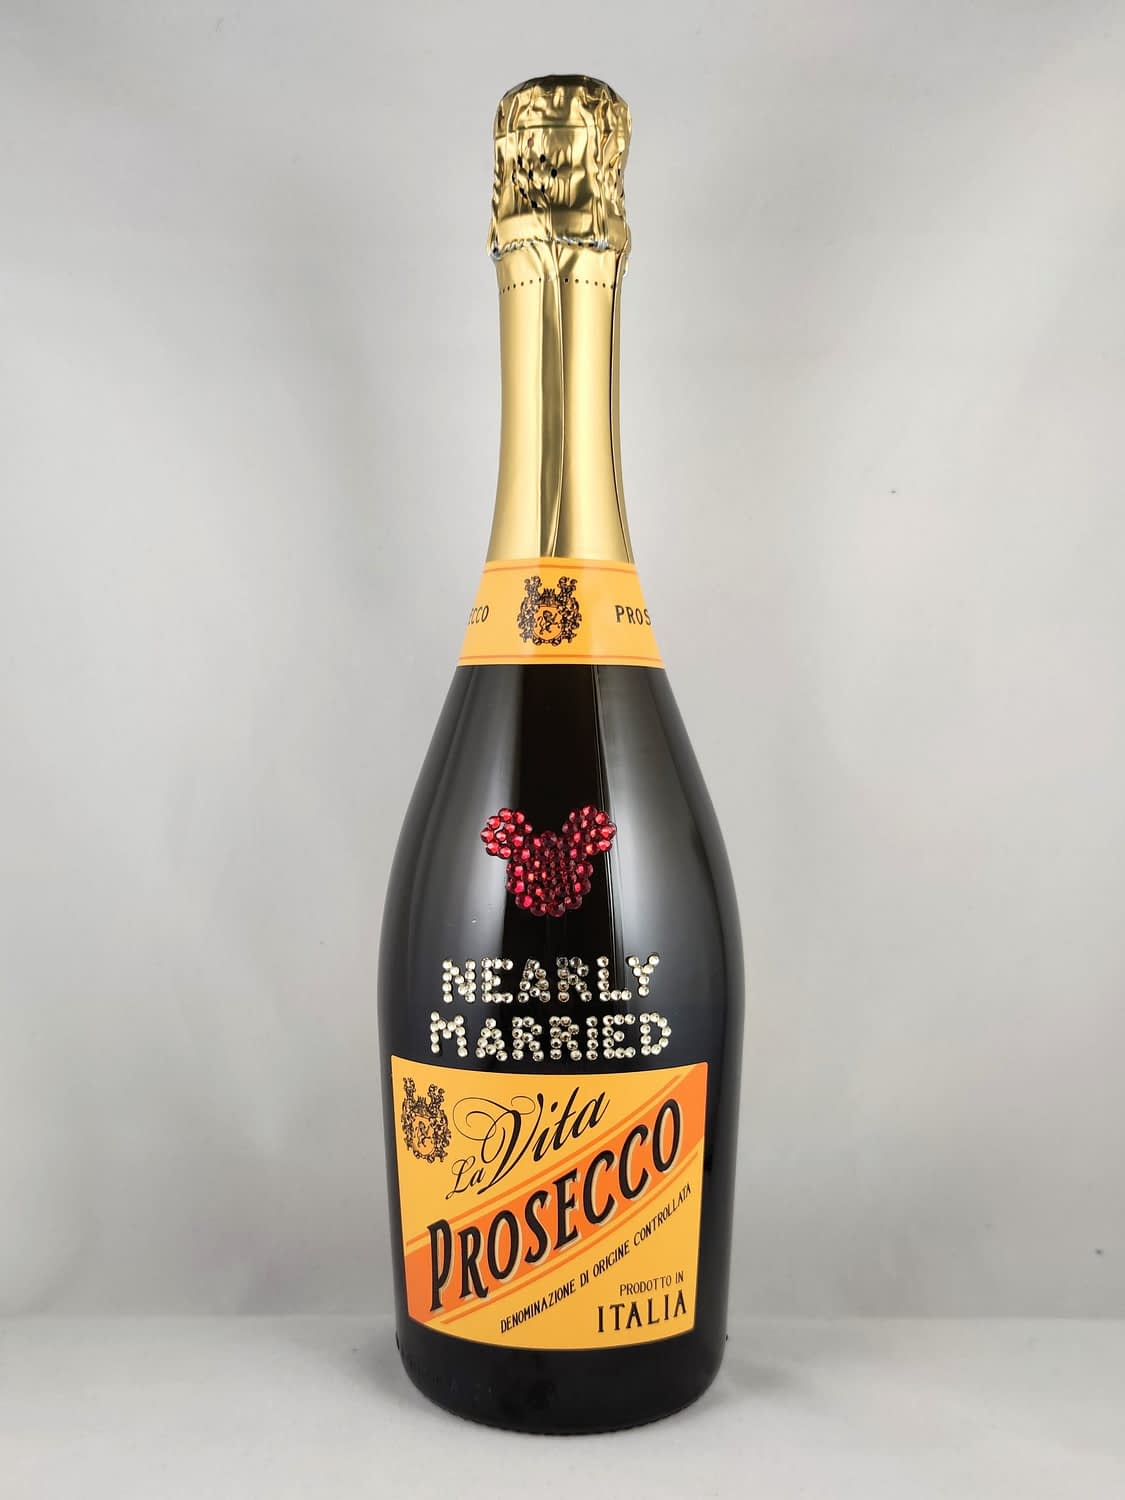 Sparkly prosecco bottle!